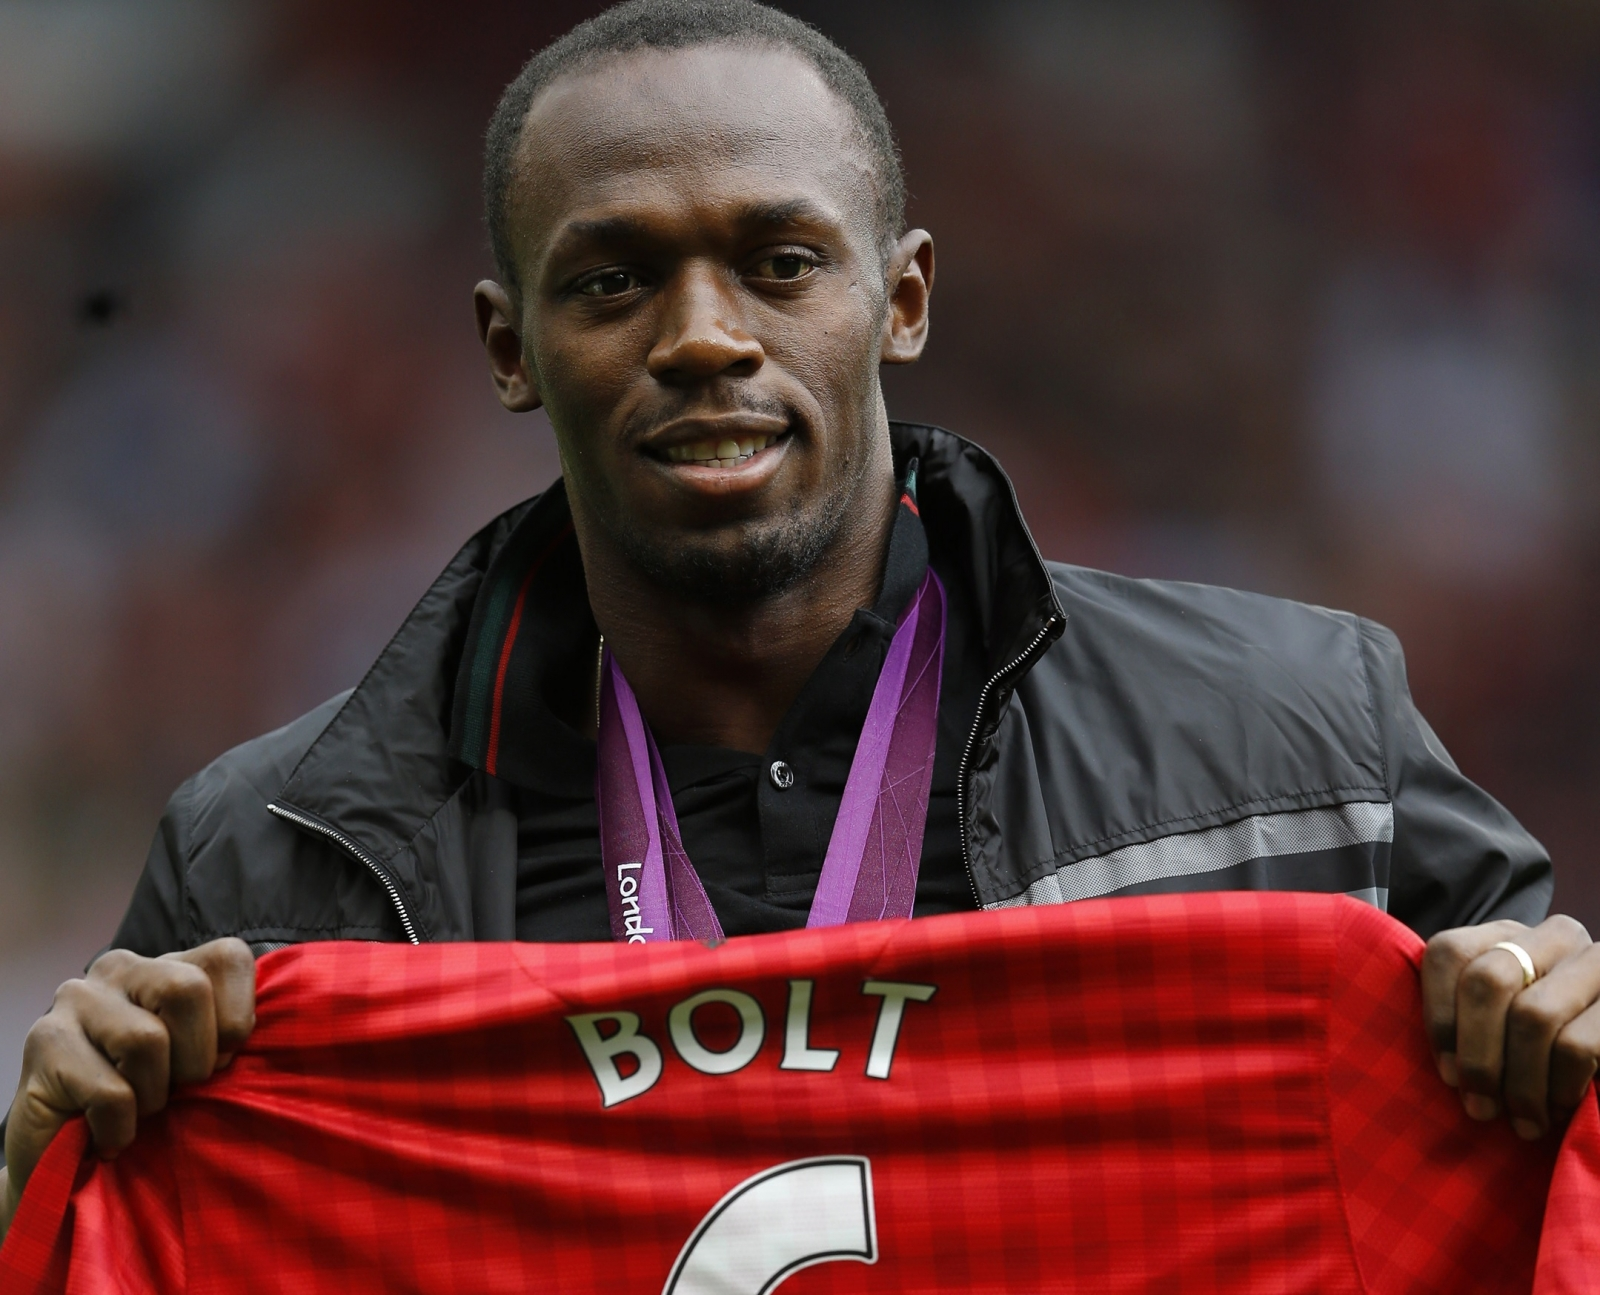 Usain Bolt Olympic Icon To Train With Borussia Dortmund